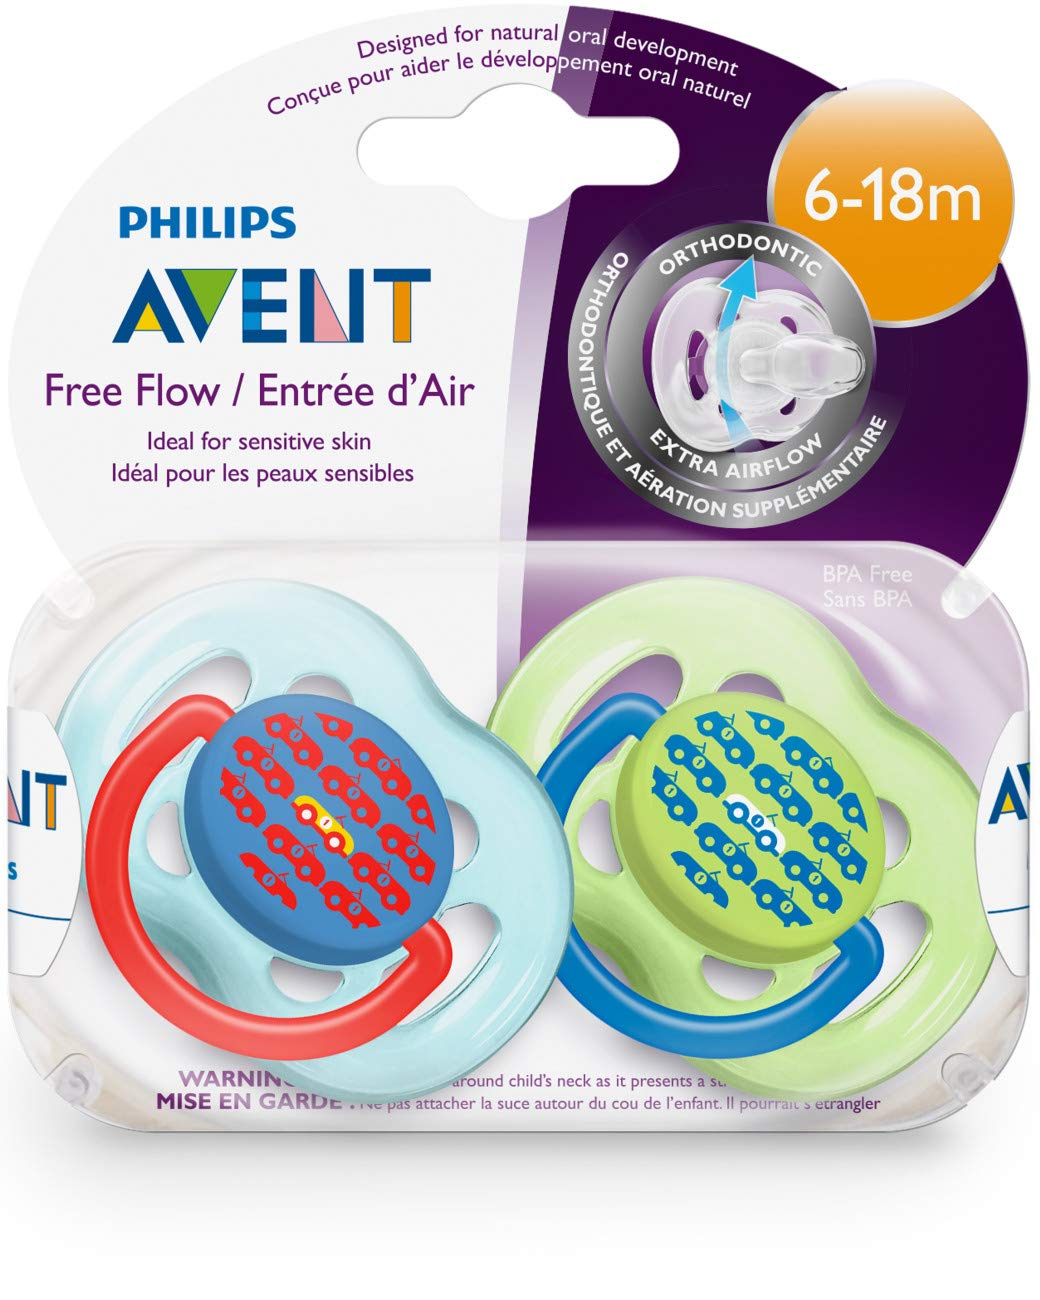 Amazon.com: Philips AVENT última intervensión de BPA Fashion ...